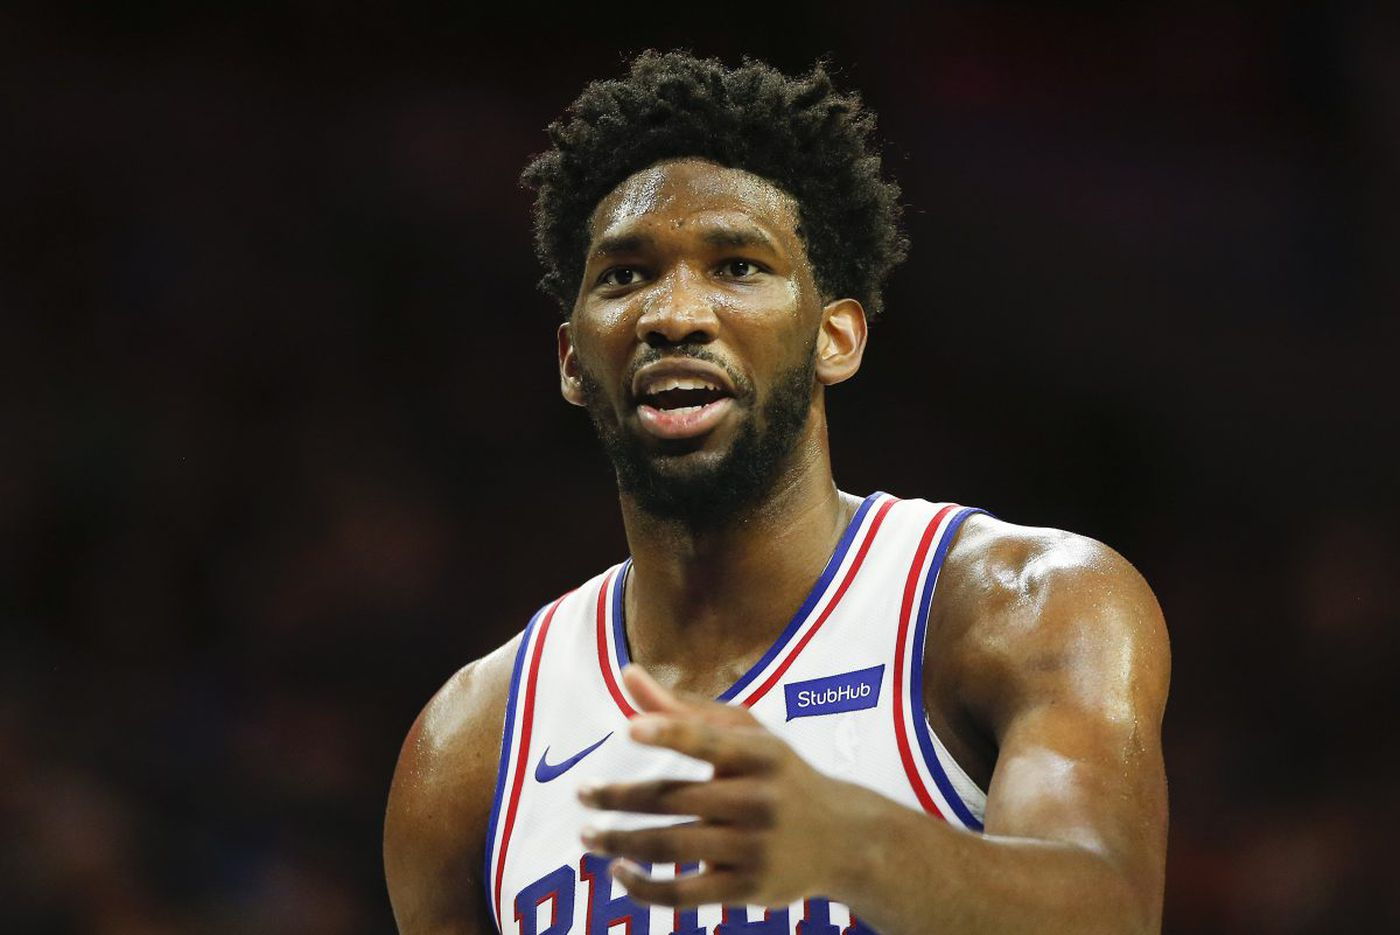 Sixers' Joel Embiid to compete in Rising Stars, Skills Challenge and All-Star Game